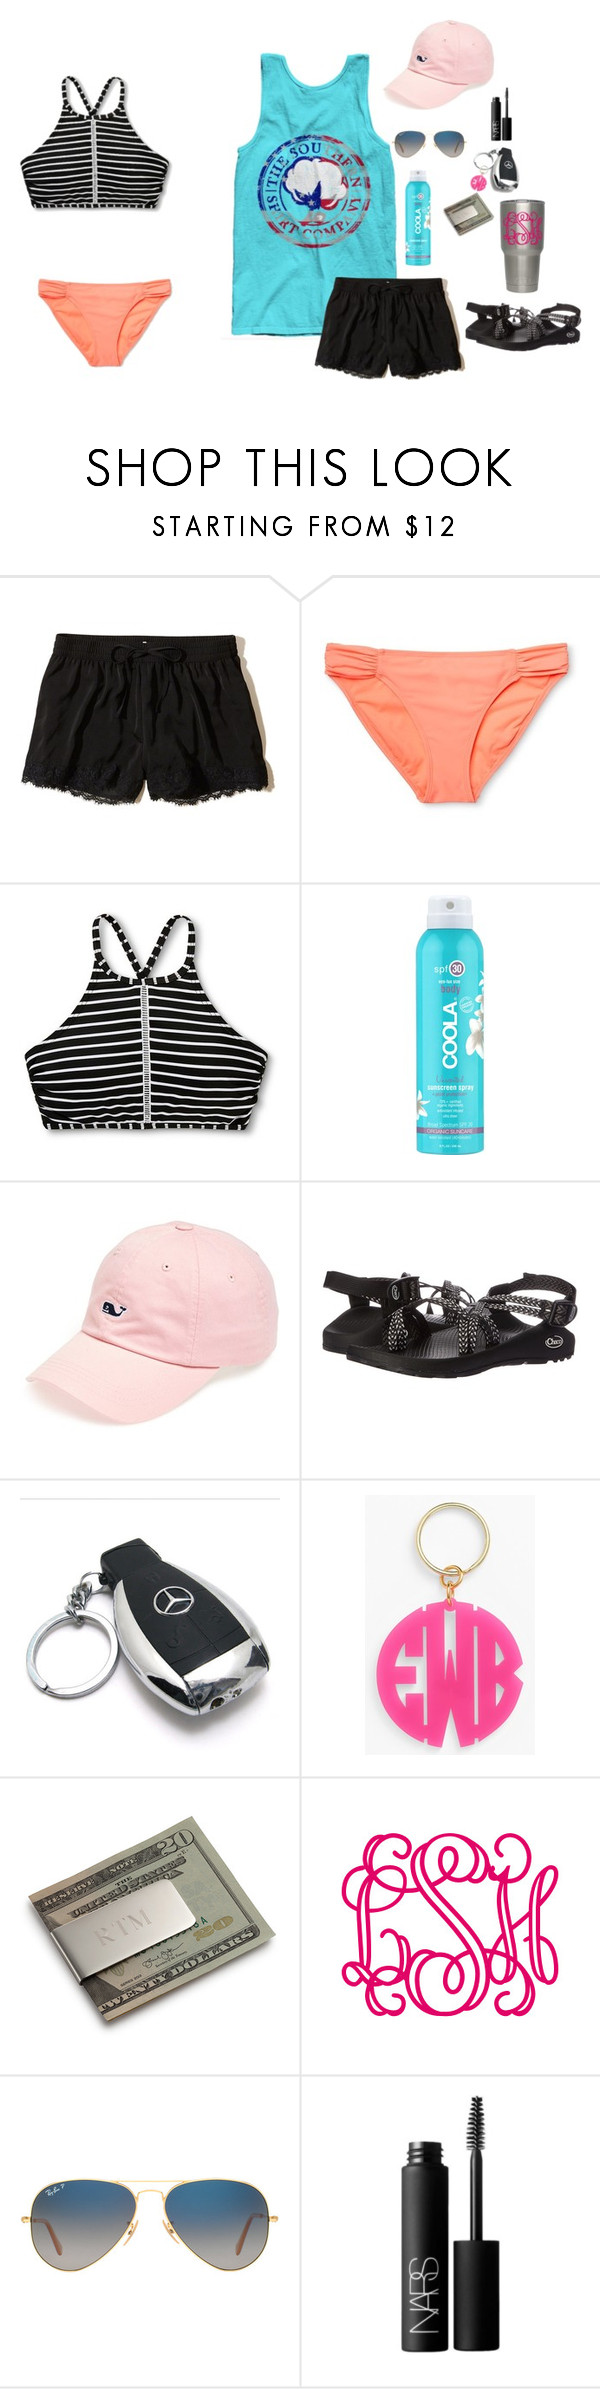 """""""Untitled #108"""" by tatheo ❤ liked on Polyvore featuring Hollister Co., Xhilaration, COOLA Suncare, Vineyard Vines, Chaco, Mercedes-Benz, Moon and Lola, Personalized Planet, Harold's and Ray-Ban"""